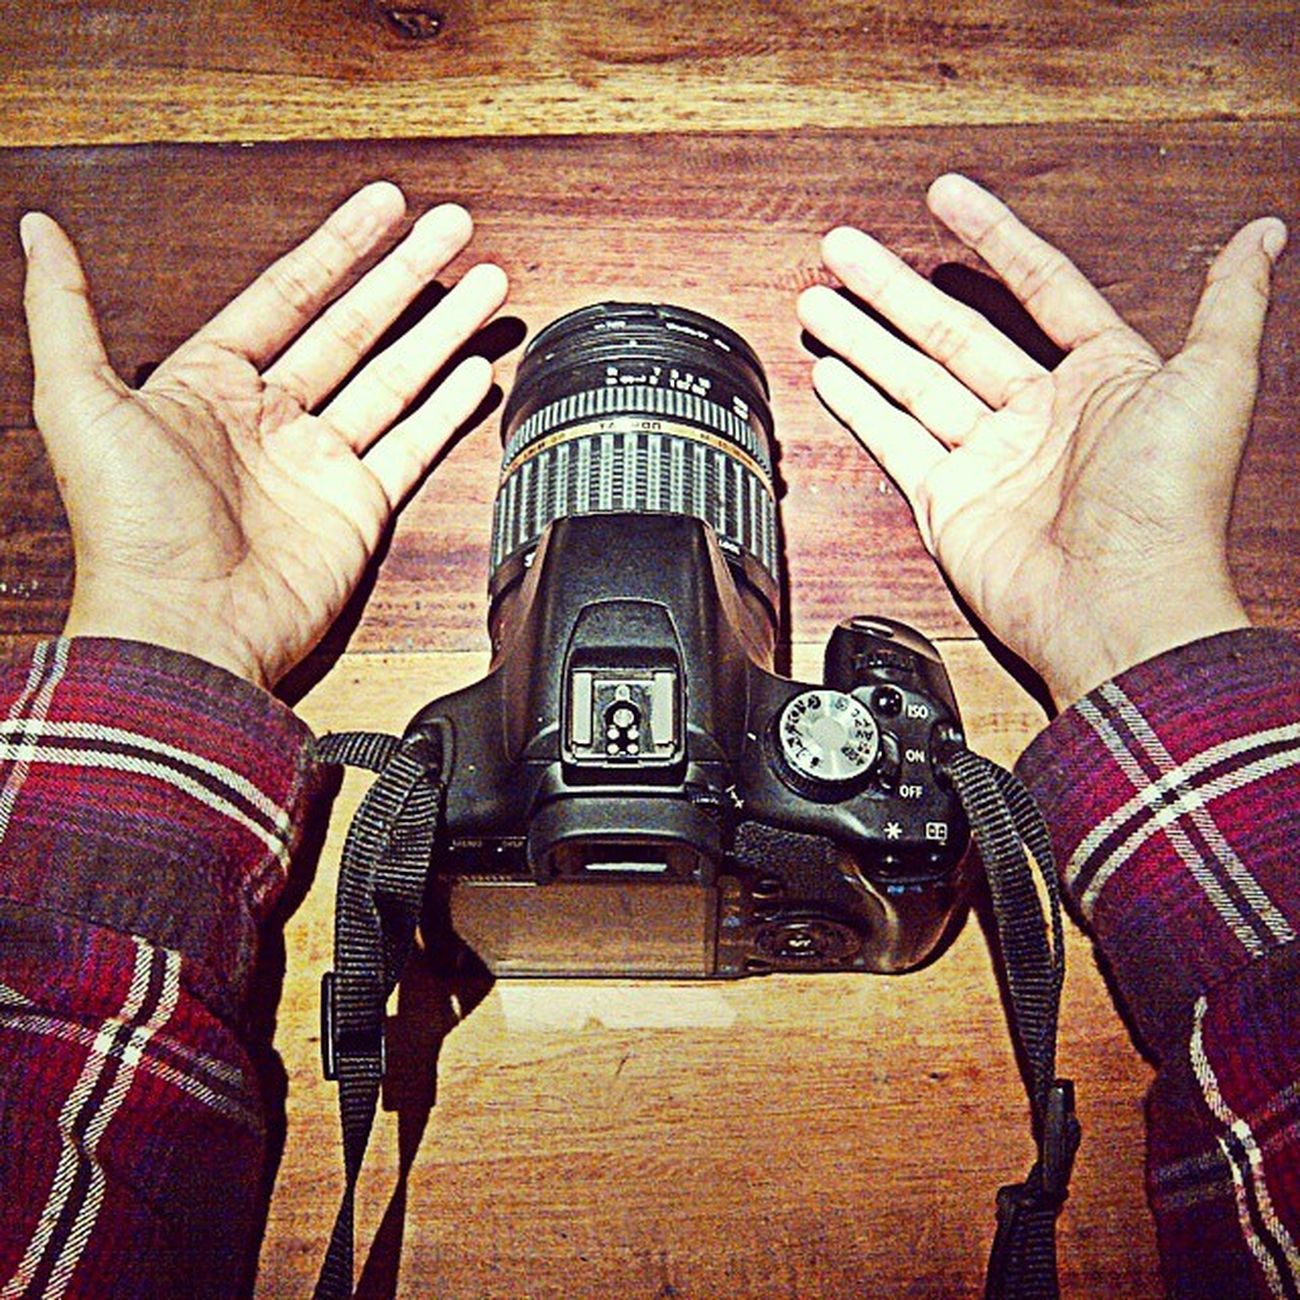 Just take a photo ... simple but i really like it ... Camerablackberry Blackberry9860 Blackberrymonza Canon eos500d simple nicephoto nicepicture niceshot favorite